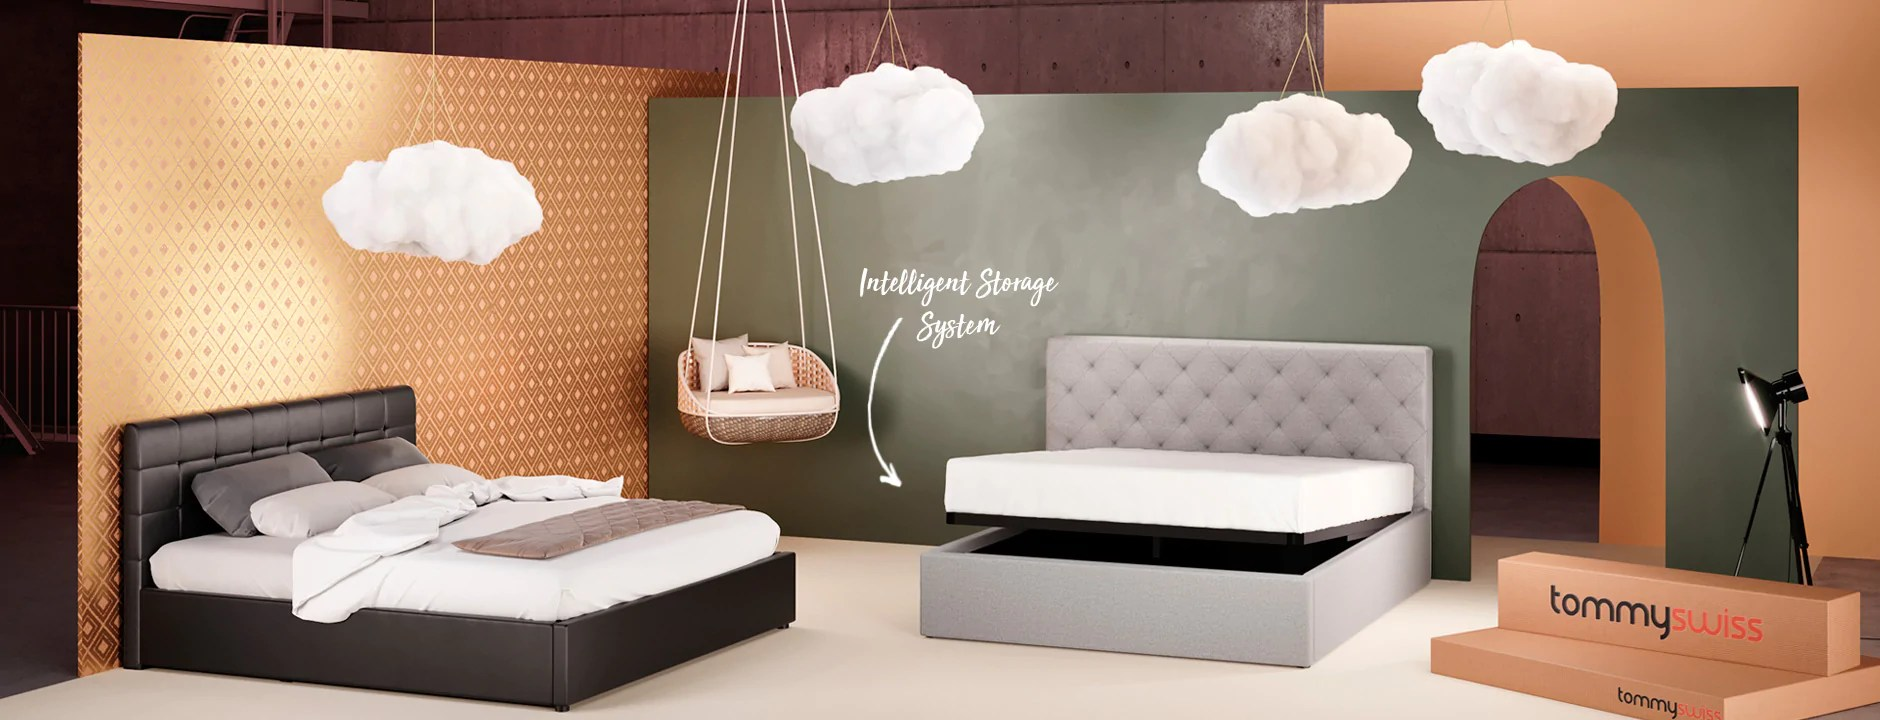 Storage Beds Australia Buy Furniture Homewares Online Tommy Swiss